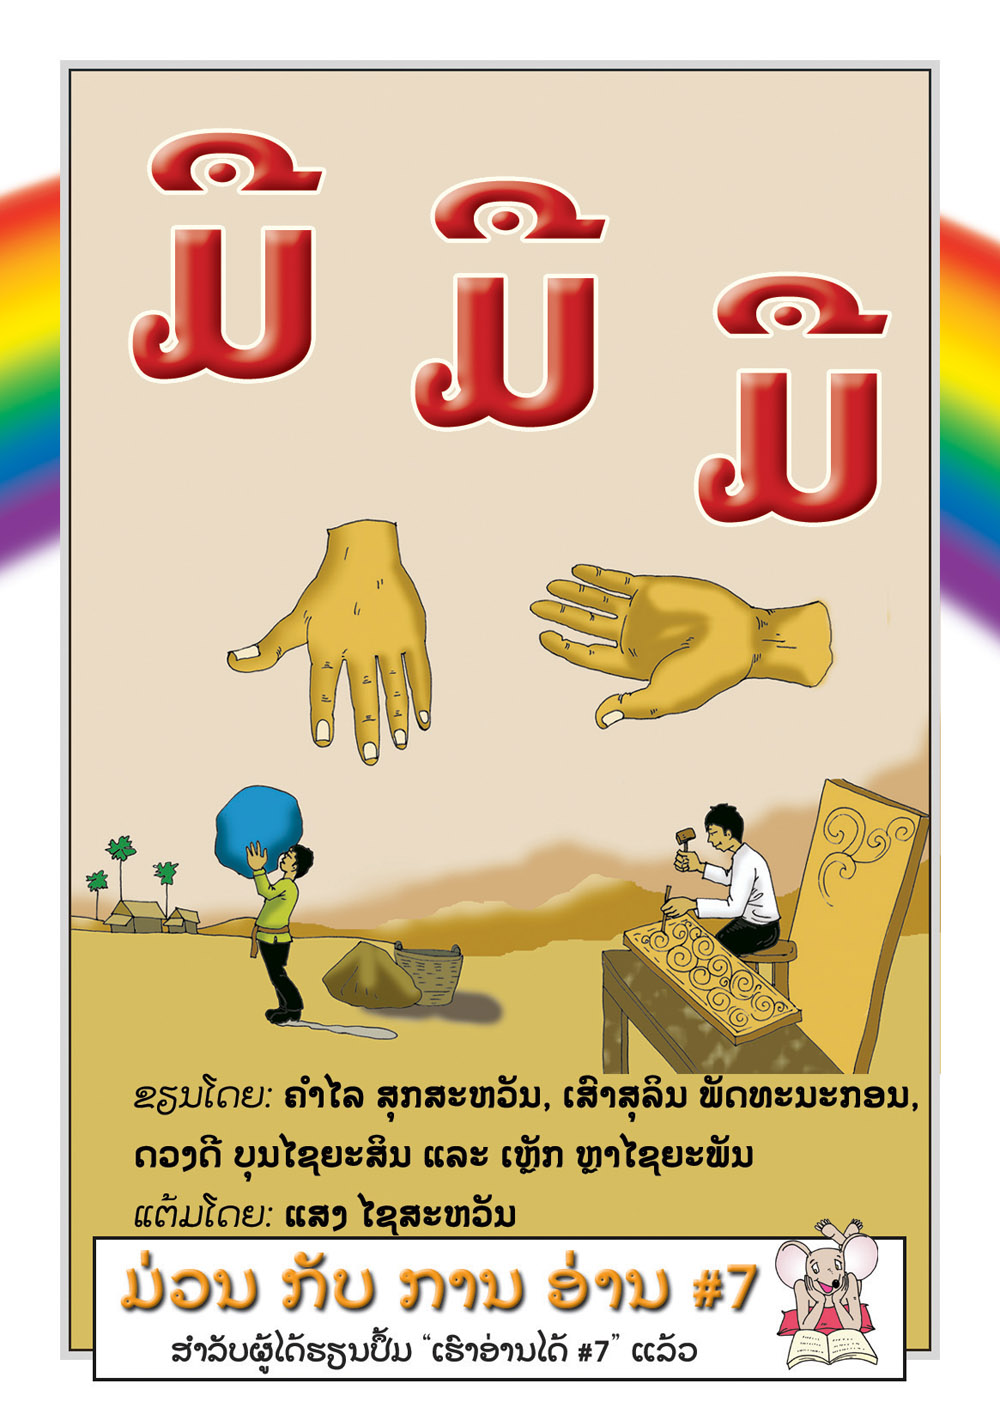 Hands, Hands, Hands large book cover, published in Lao language